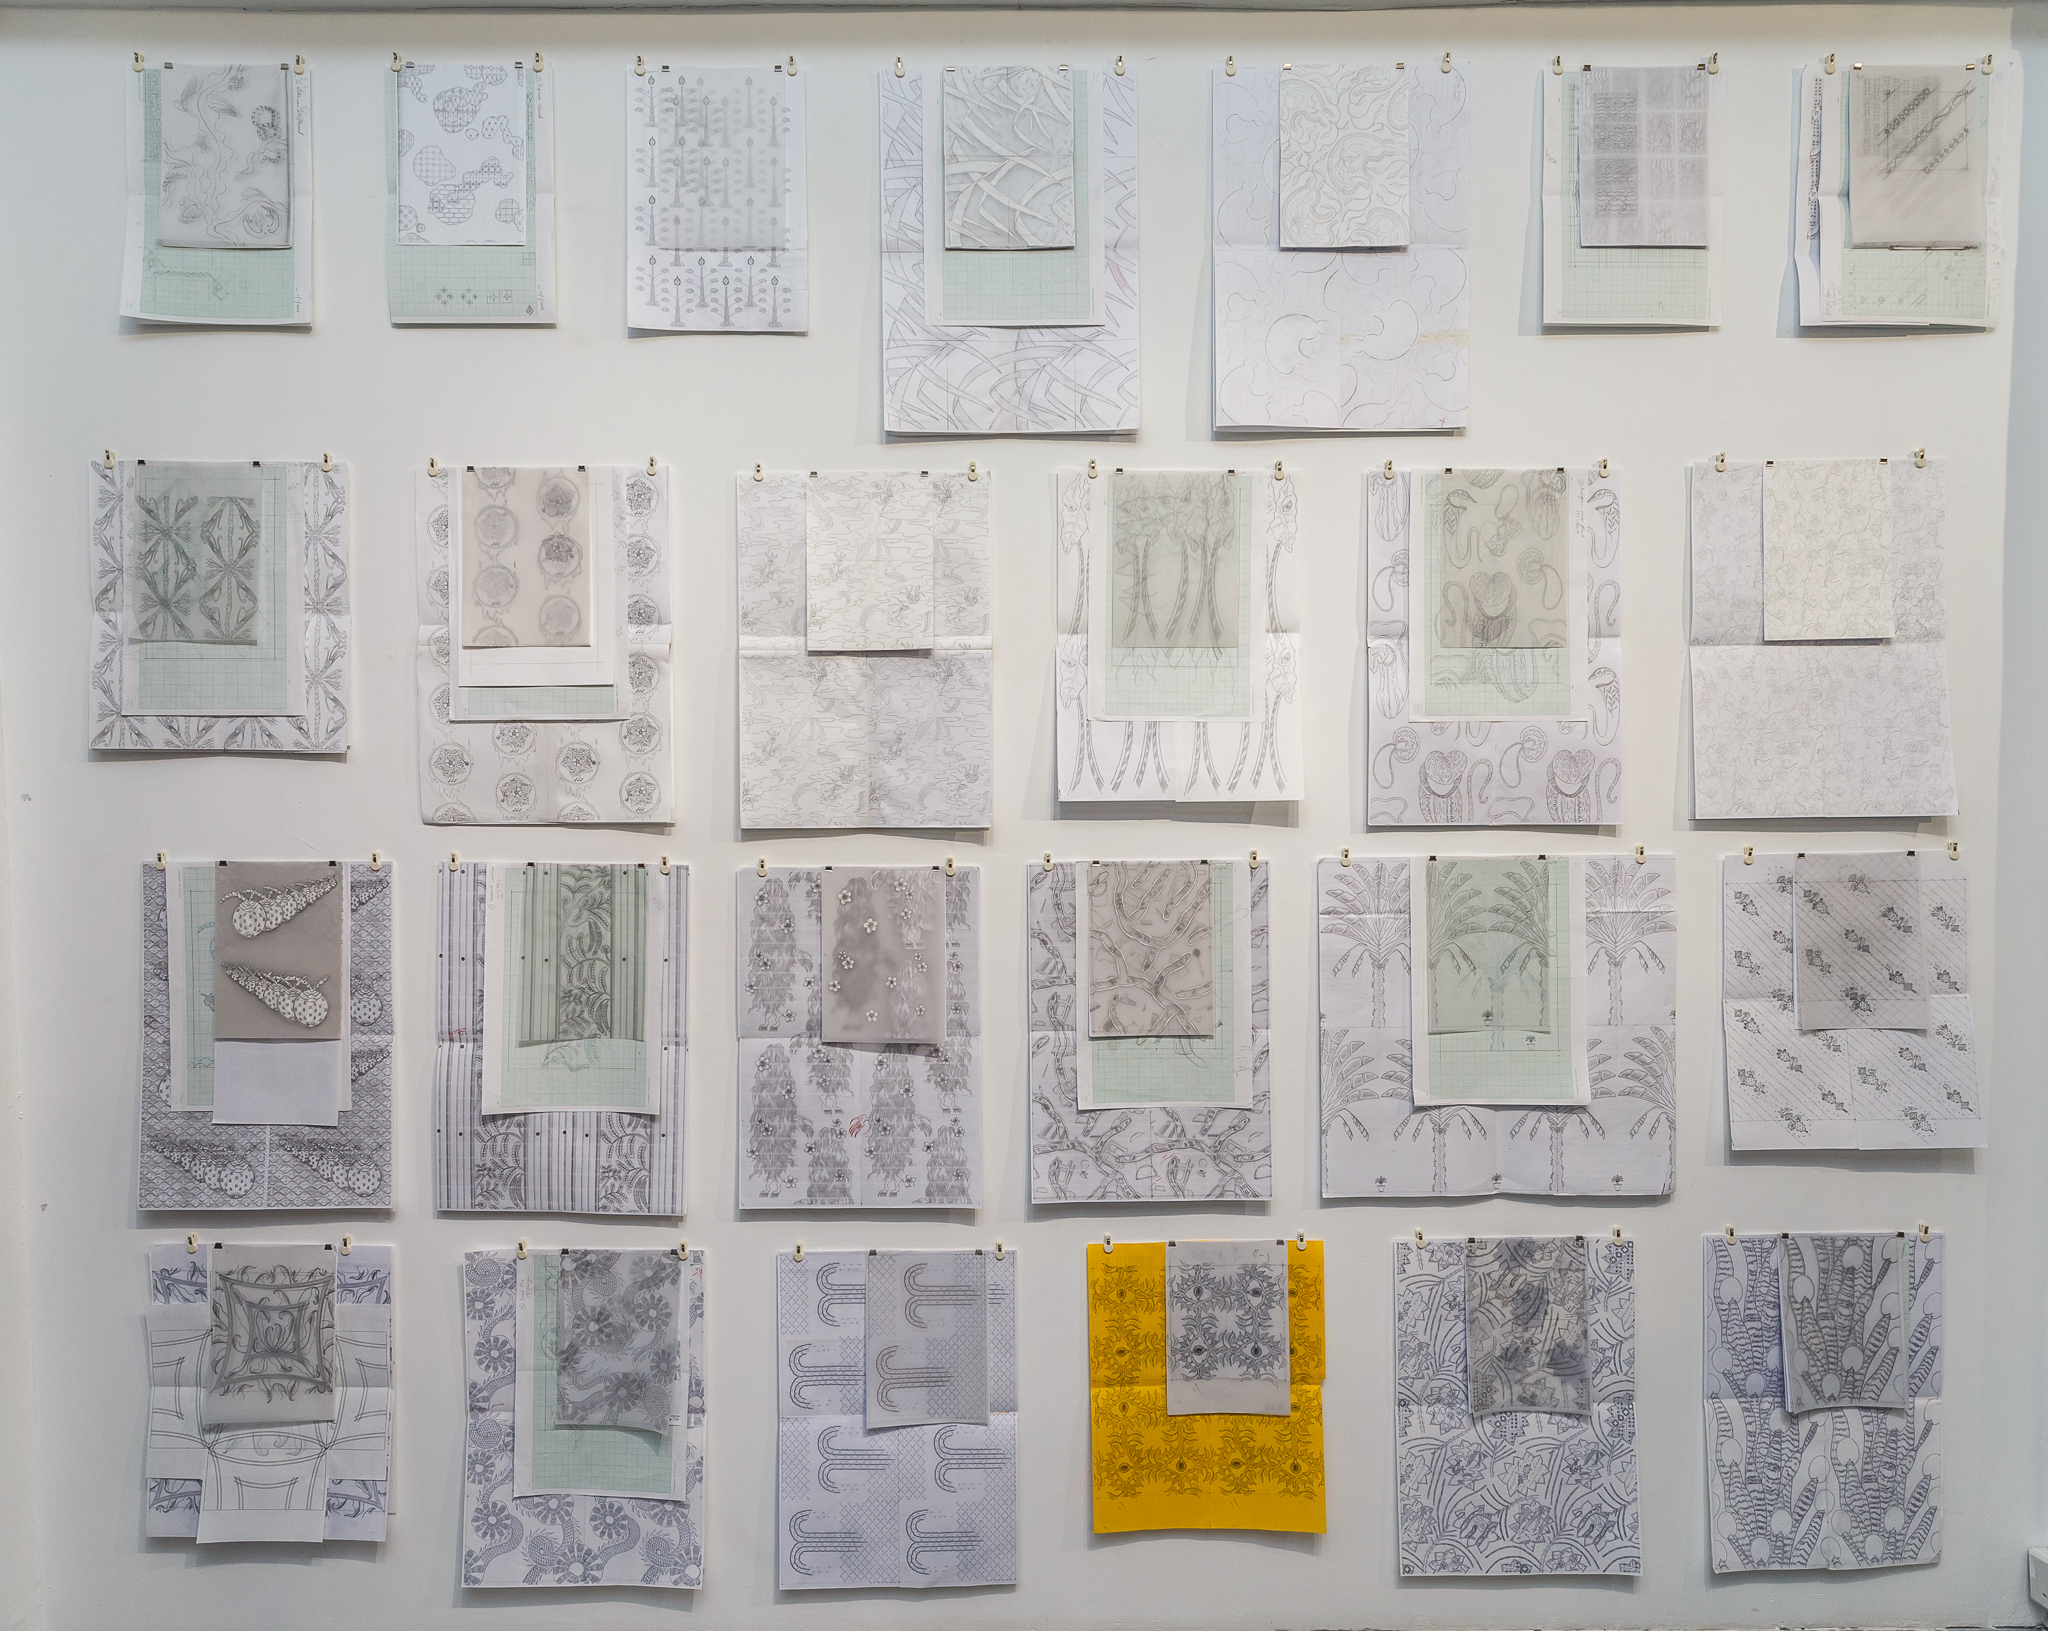 Installation of 25 working drawings